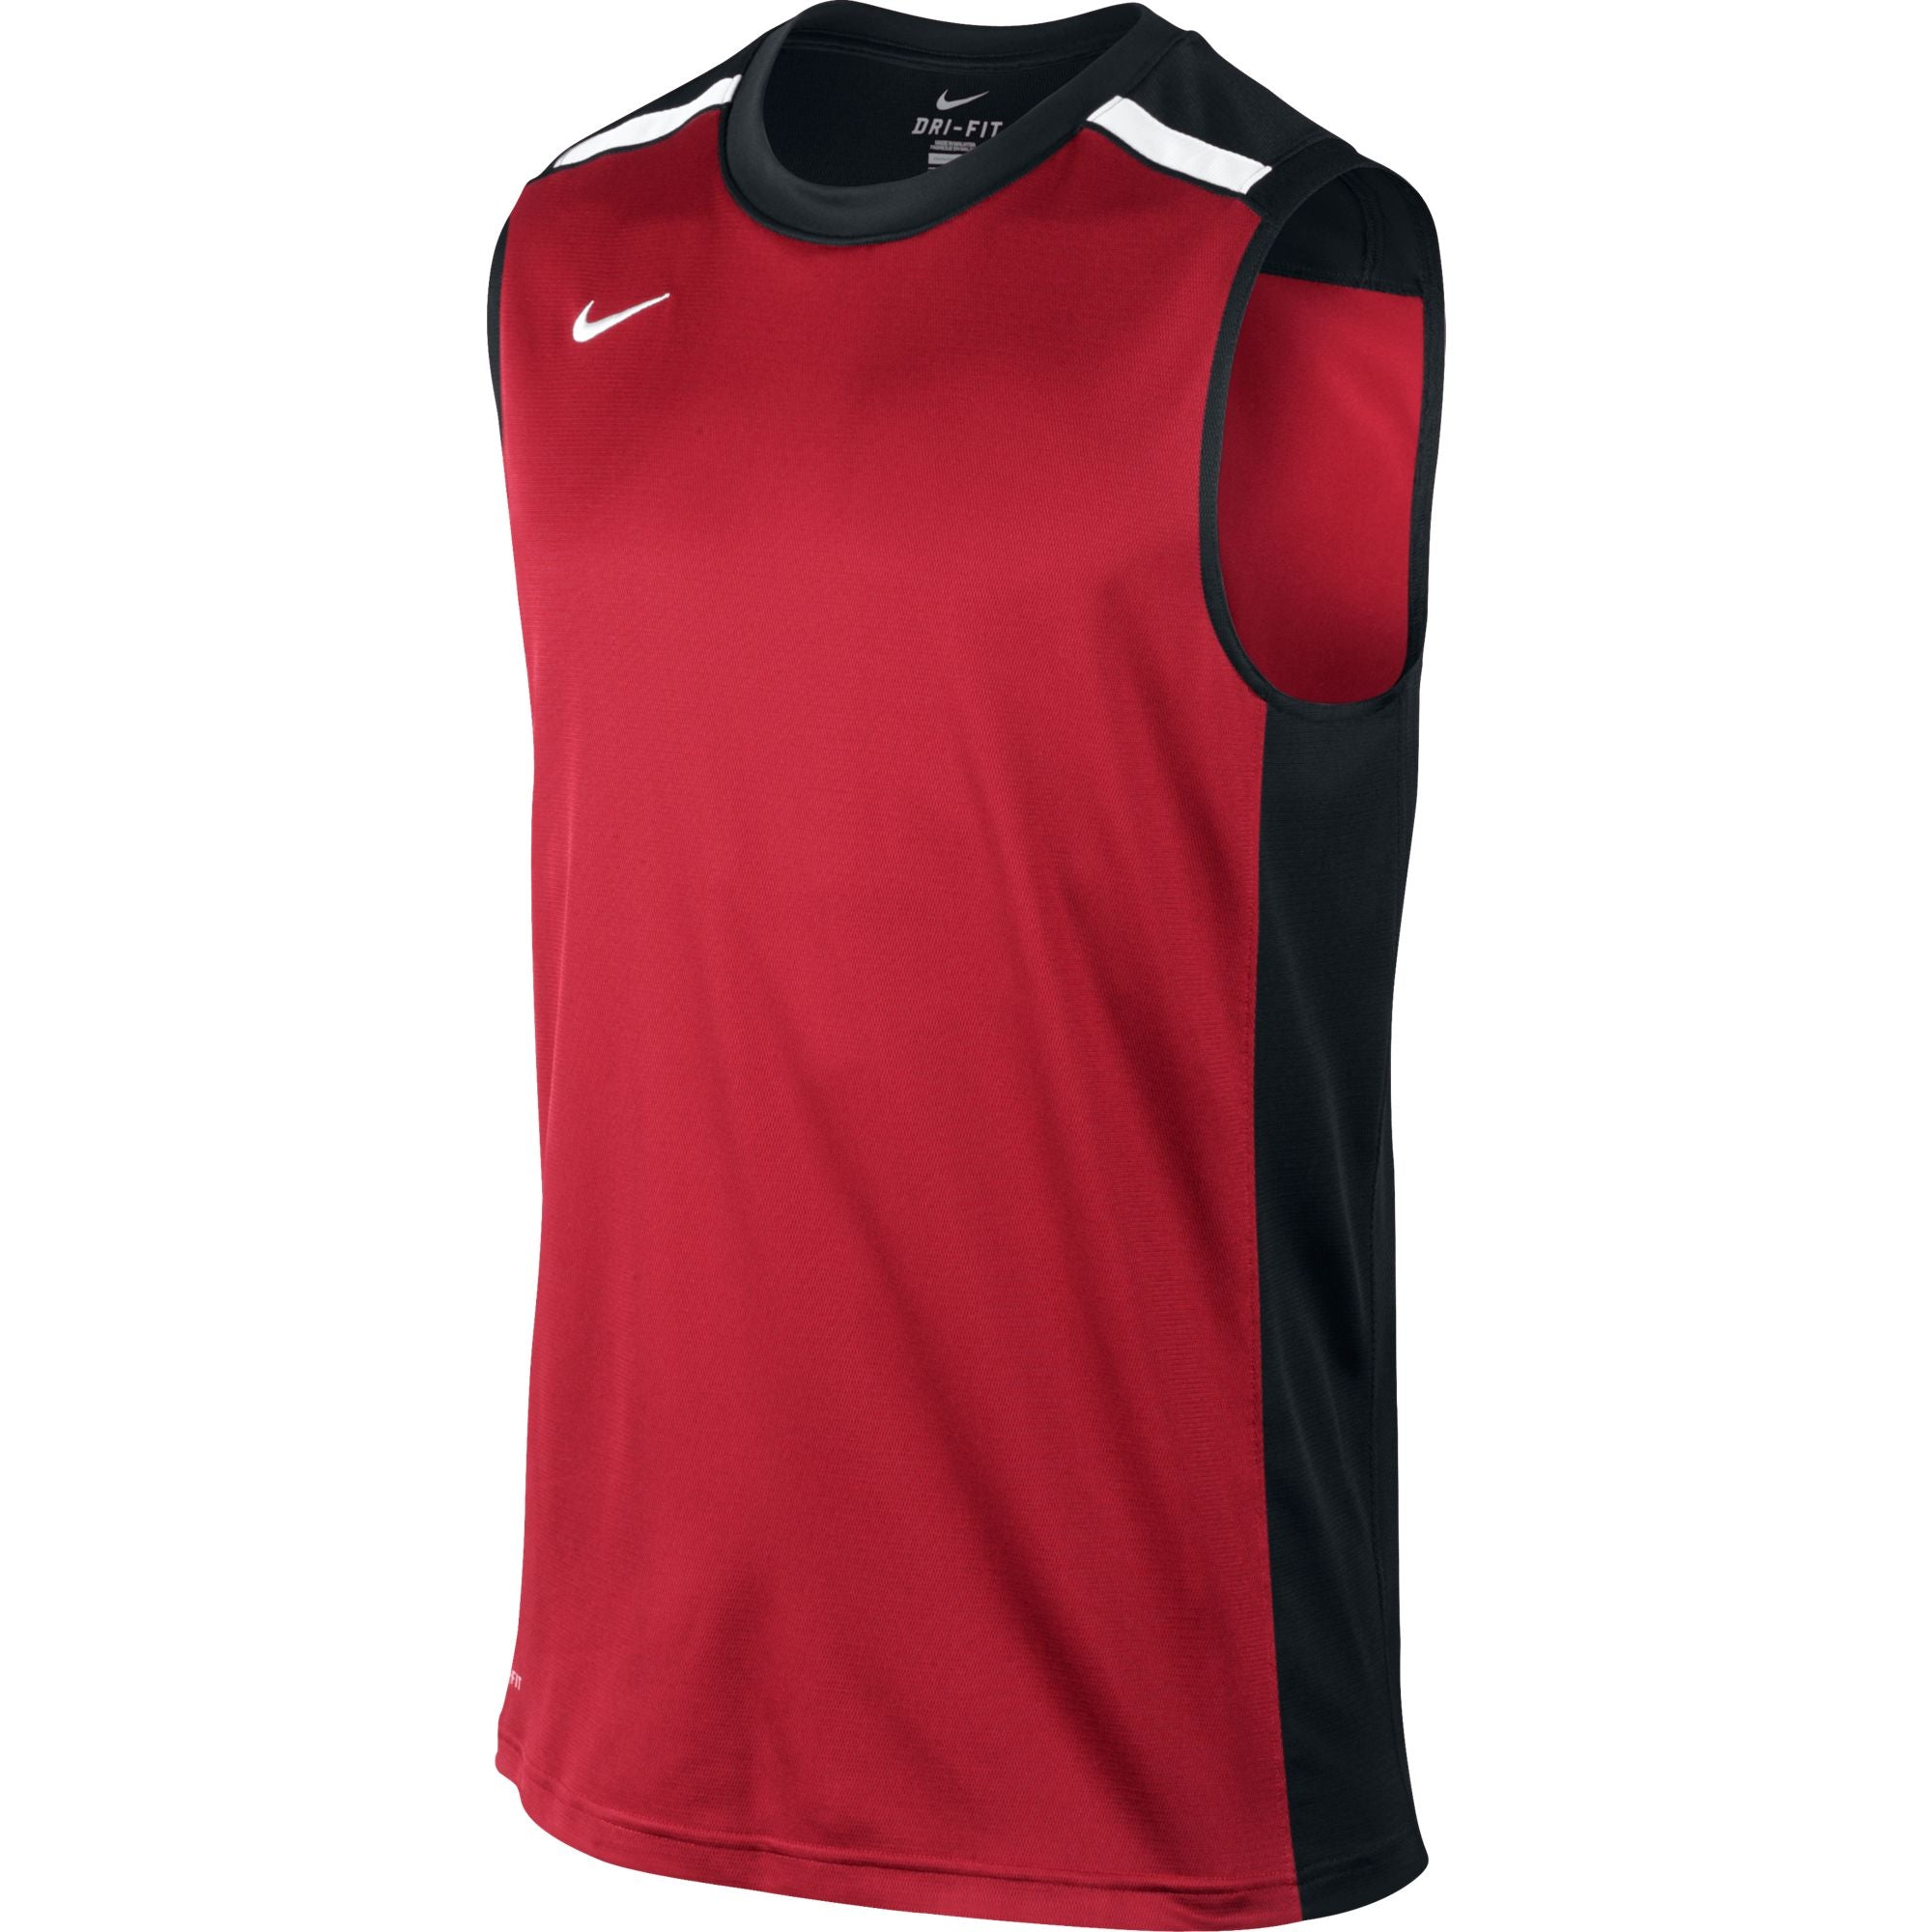 Nike Team League Basketball Kit - University Red/Black/White/White